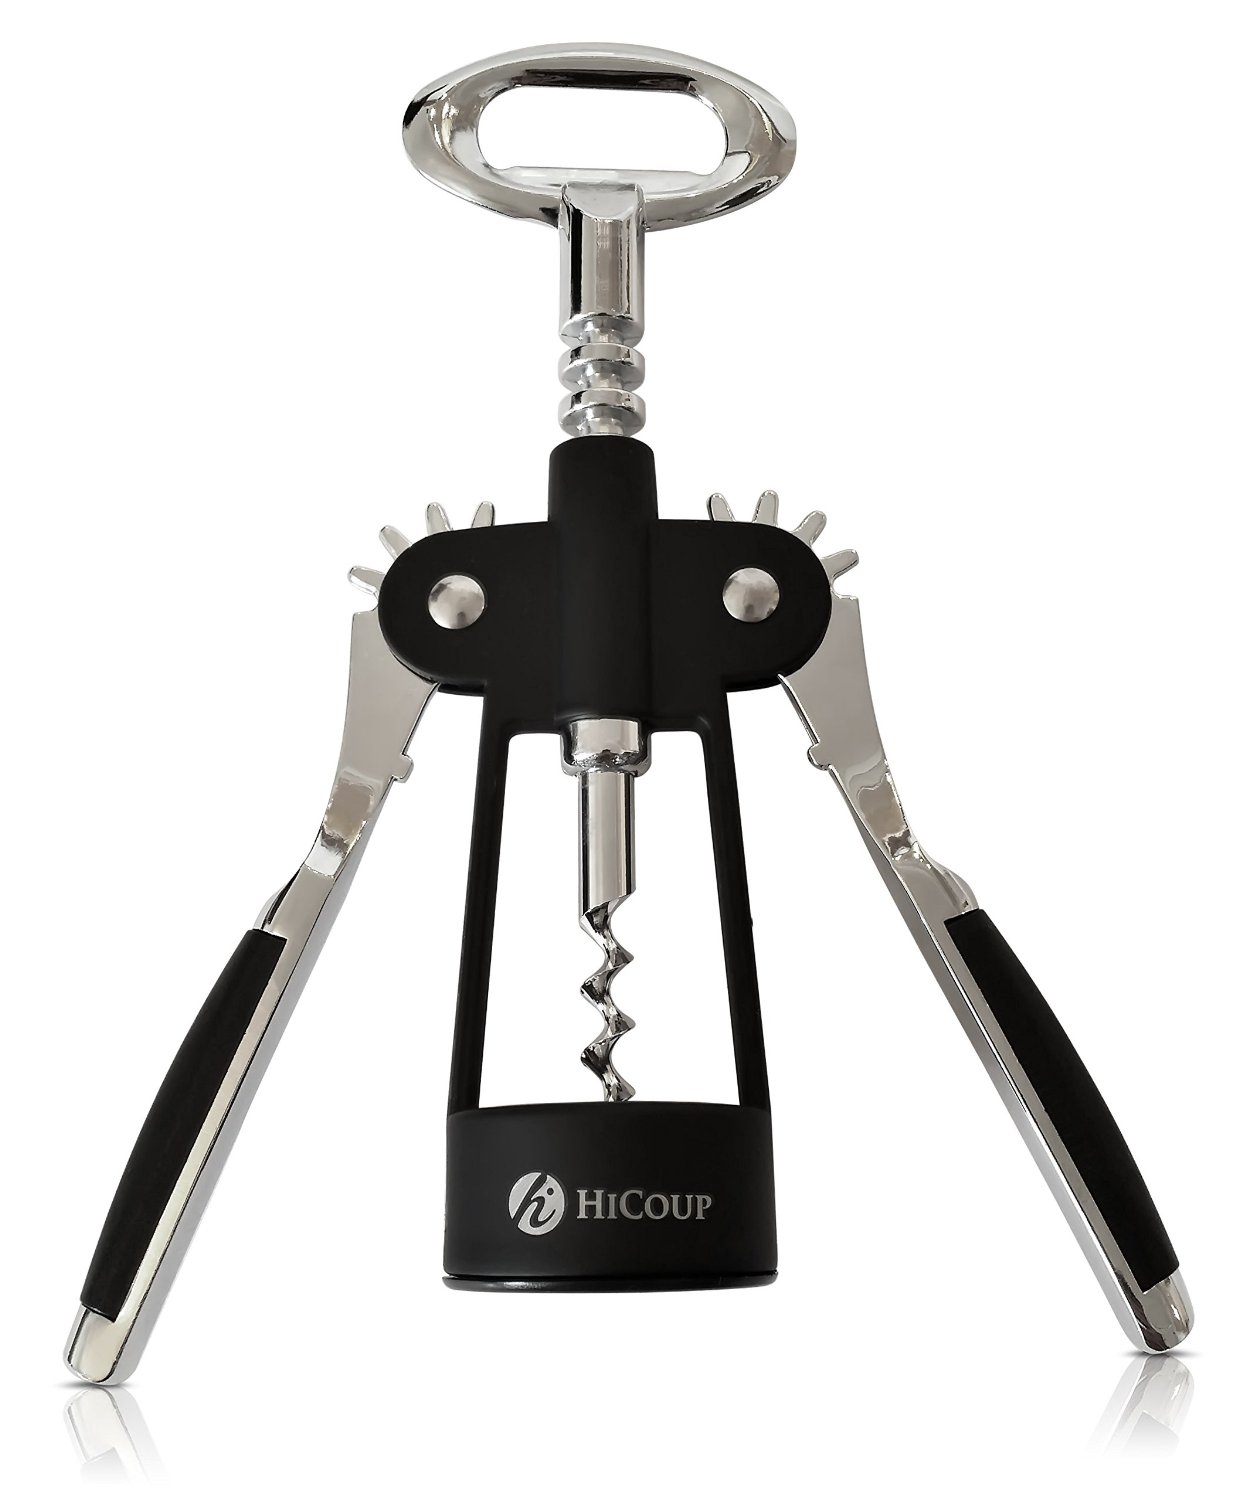 Top 10 Best Wing Corkscrew Wine Openers In 2019 Reviews